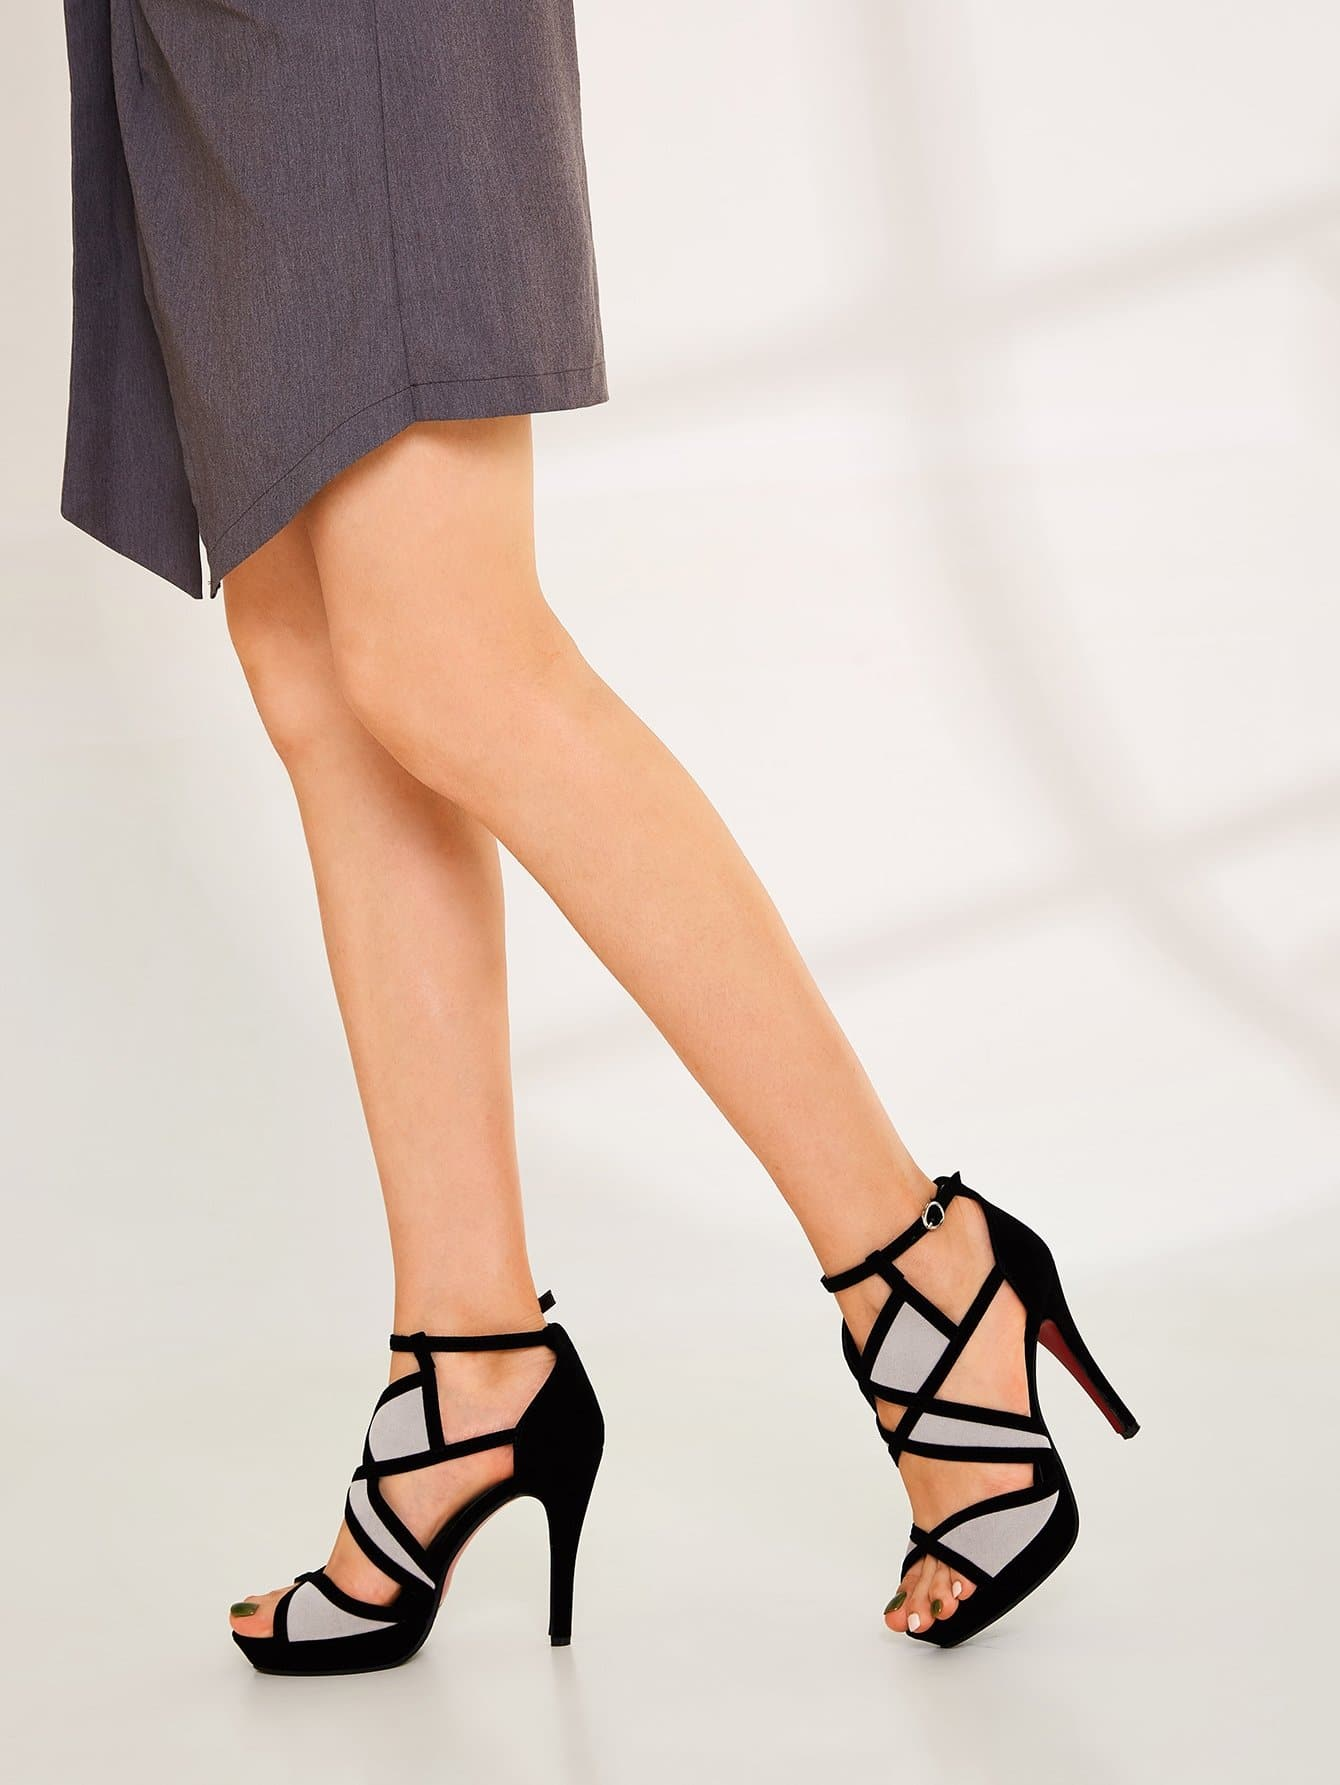 Peep Toe Ankle Strap Sandals - FLJ CORPORATIONS